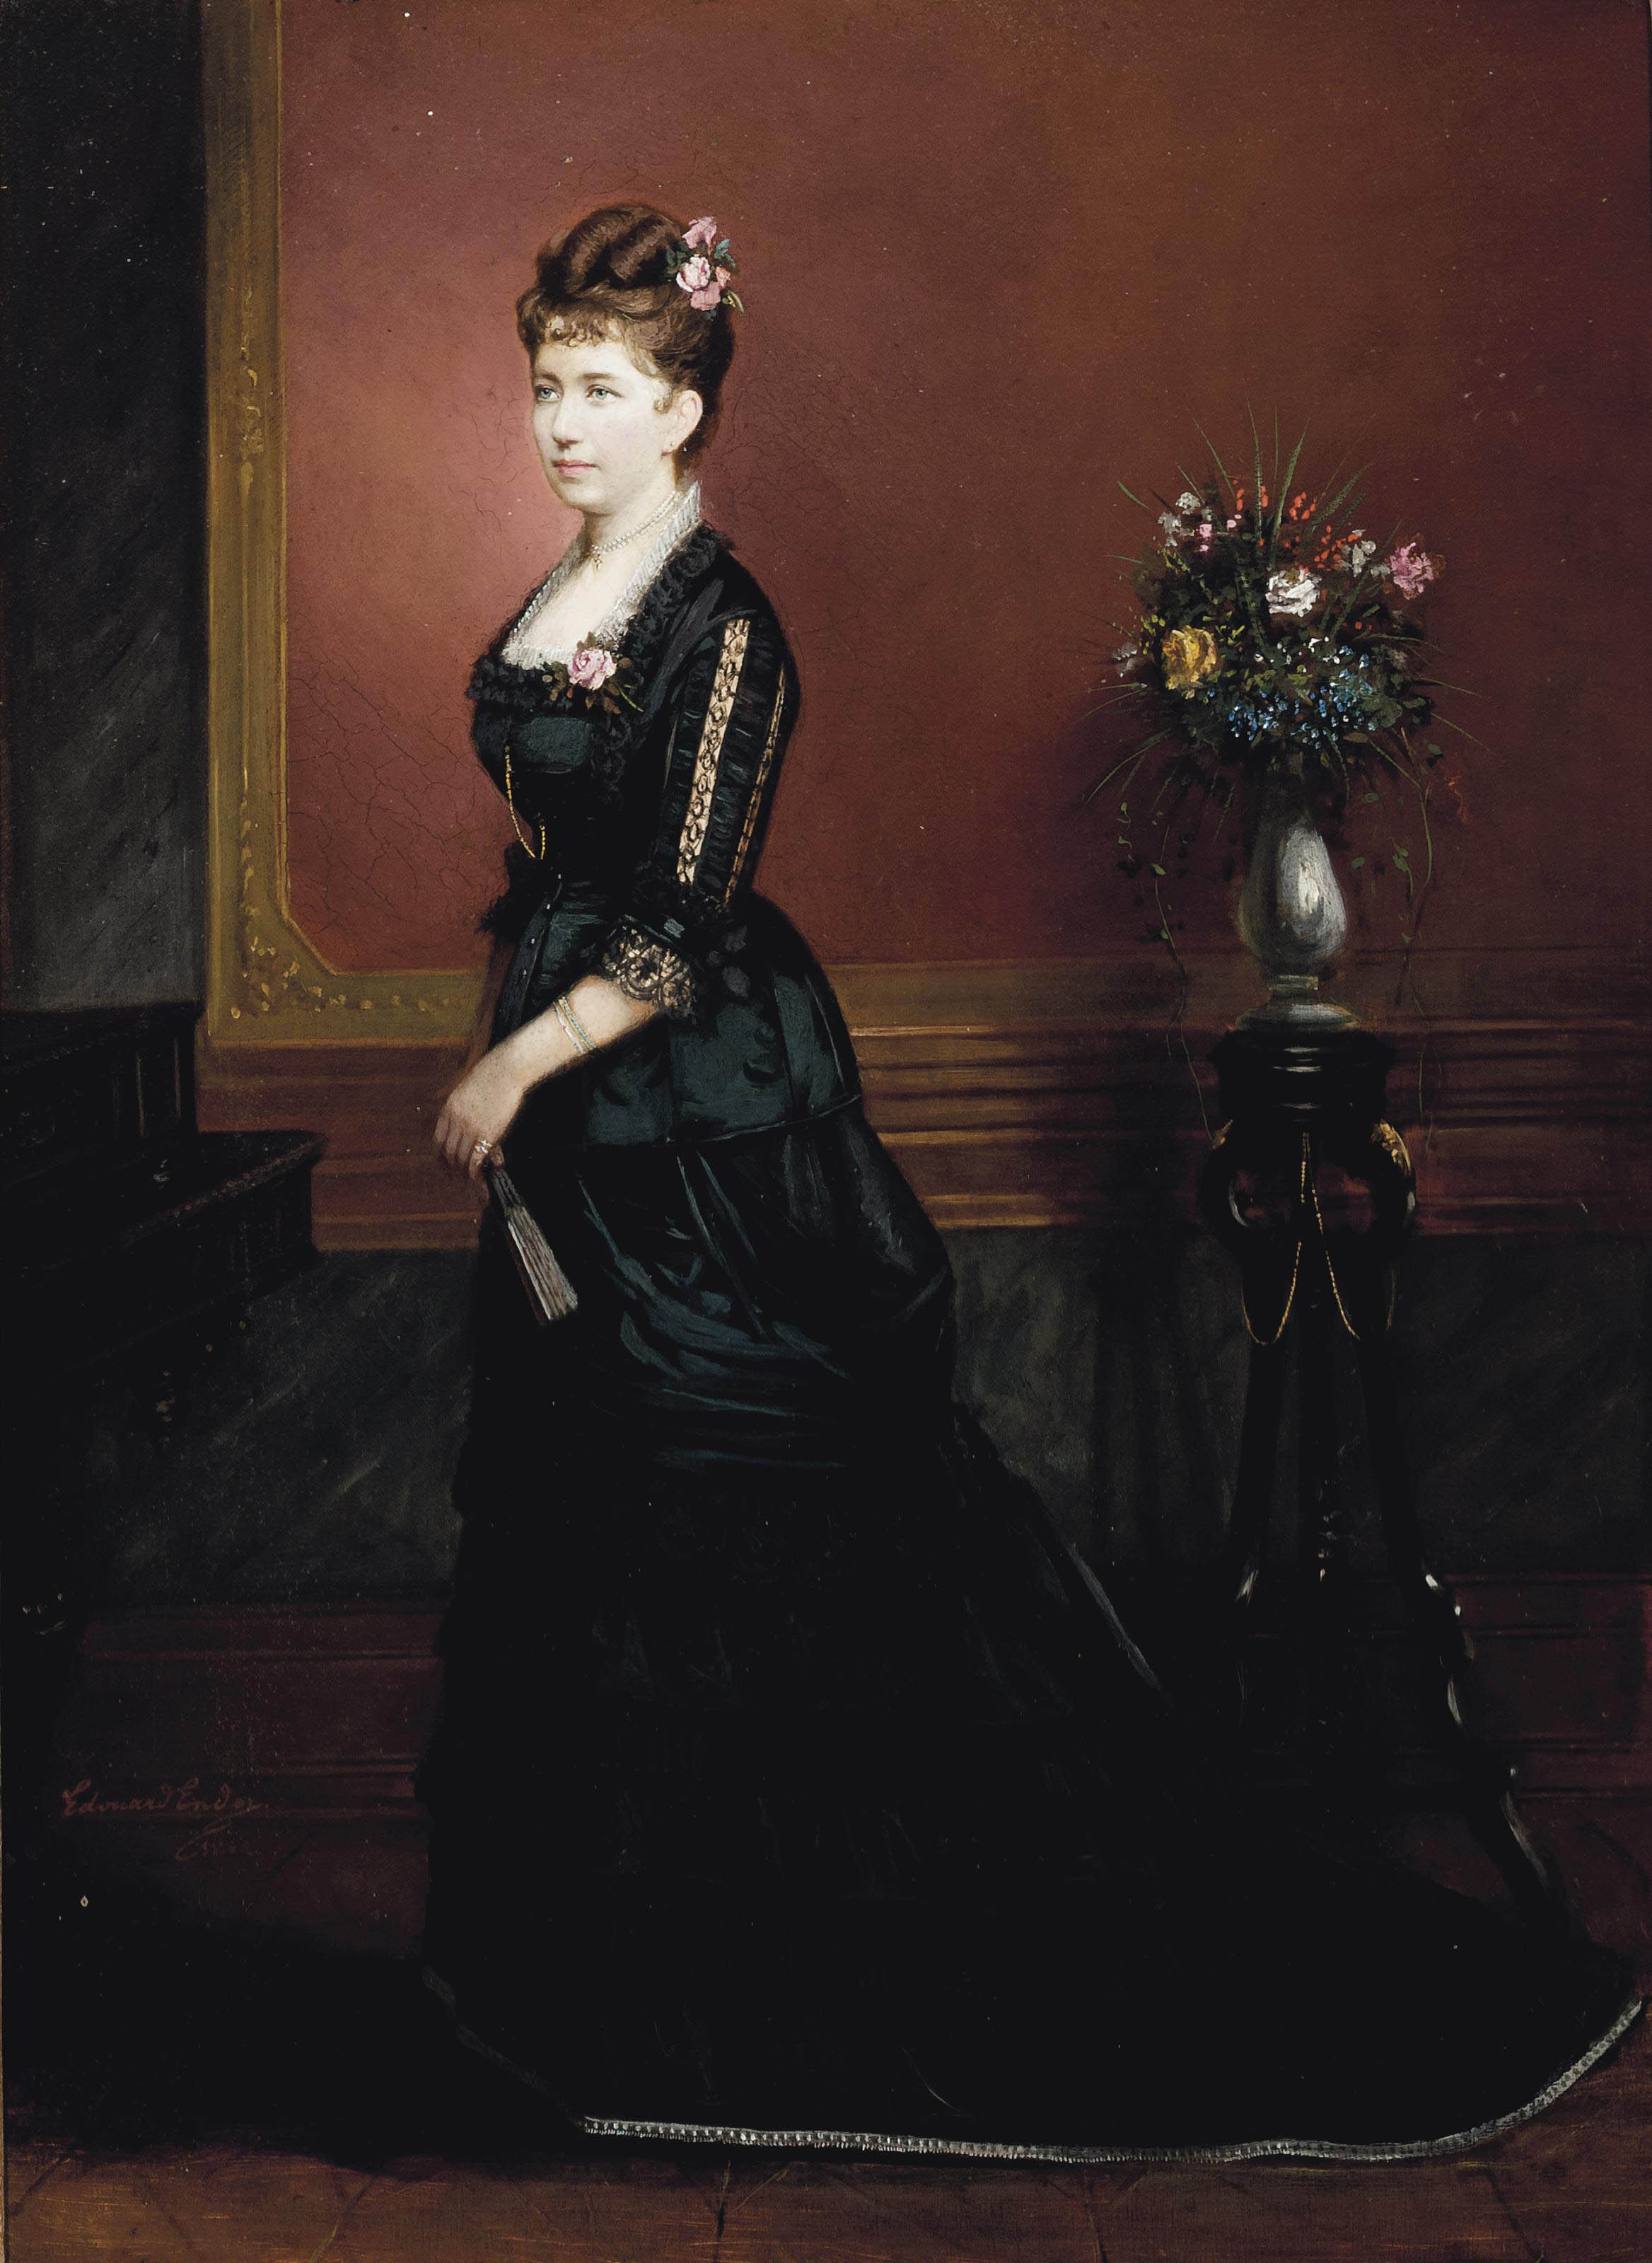 Portrait of lady, full-length, in a black dress, standing in an interior